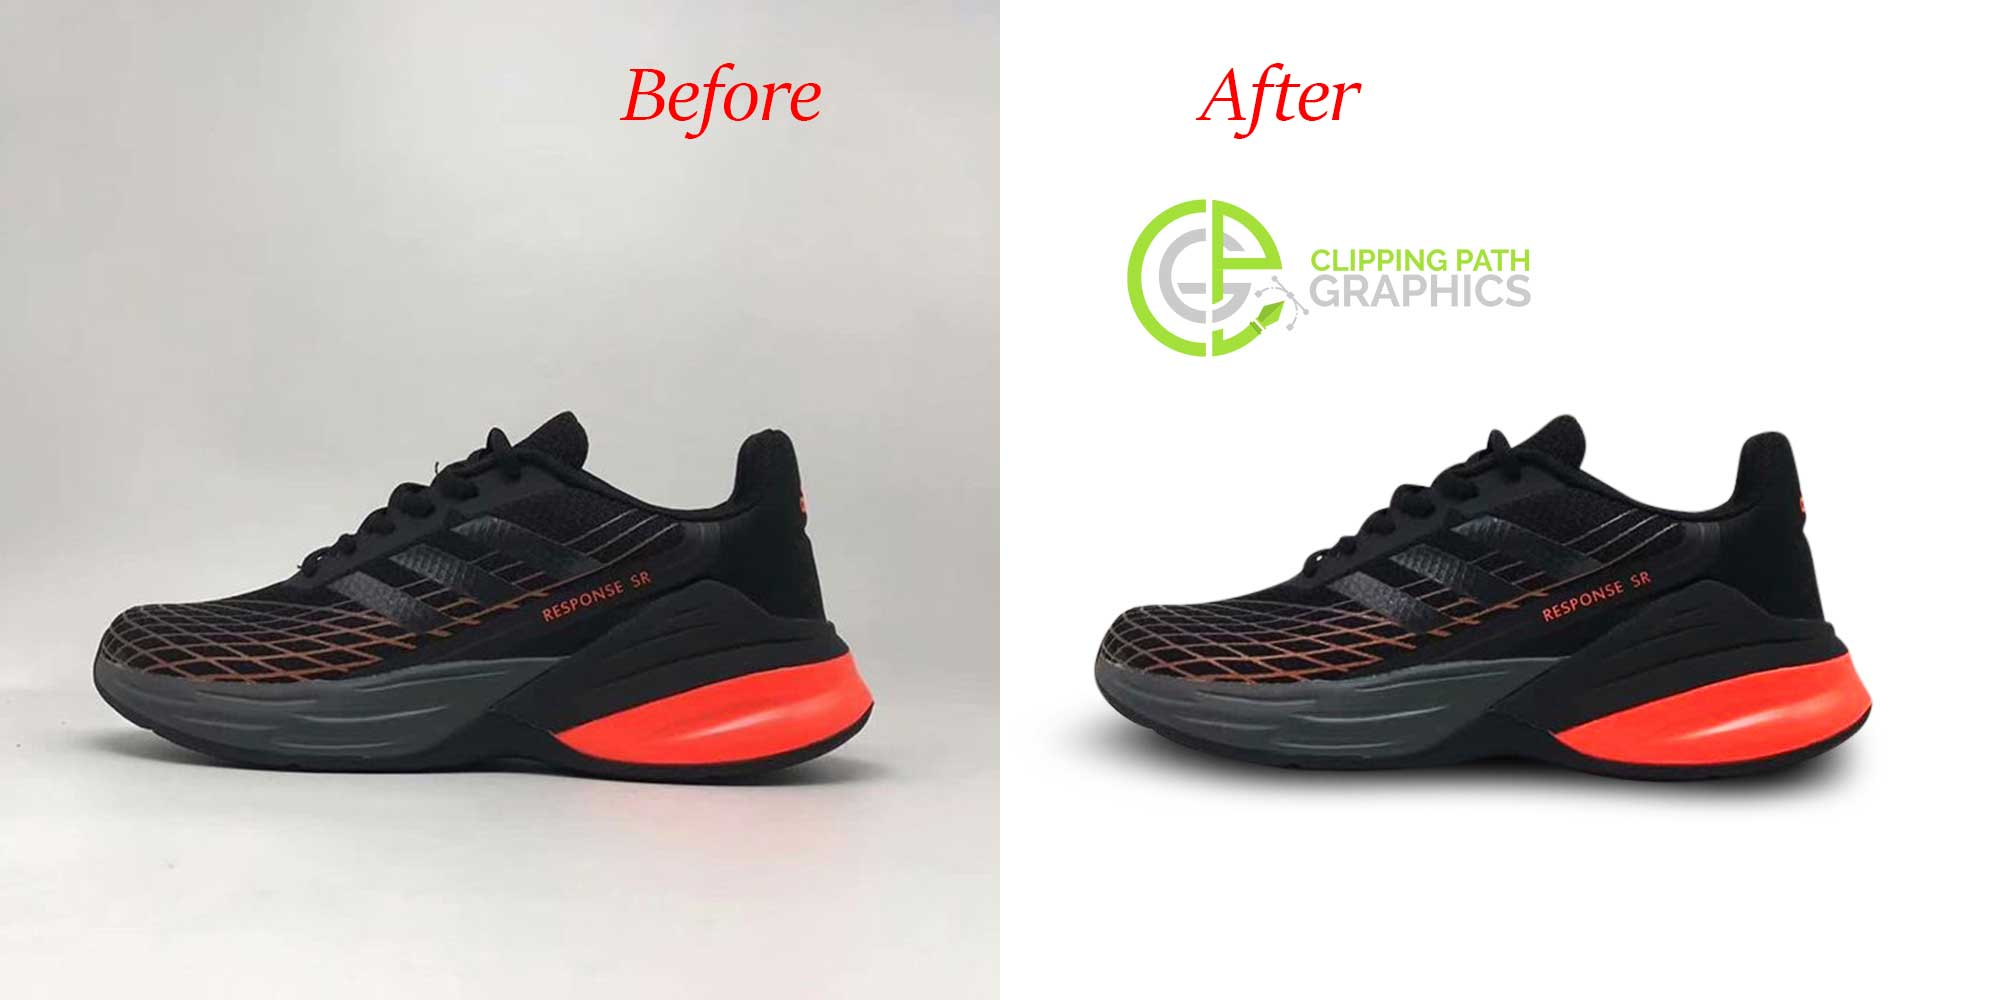 Product shadow service- Clipping path graphics